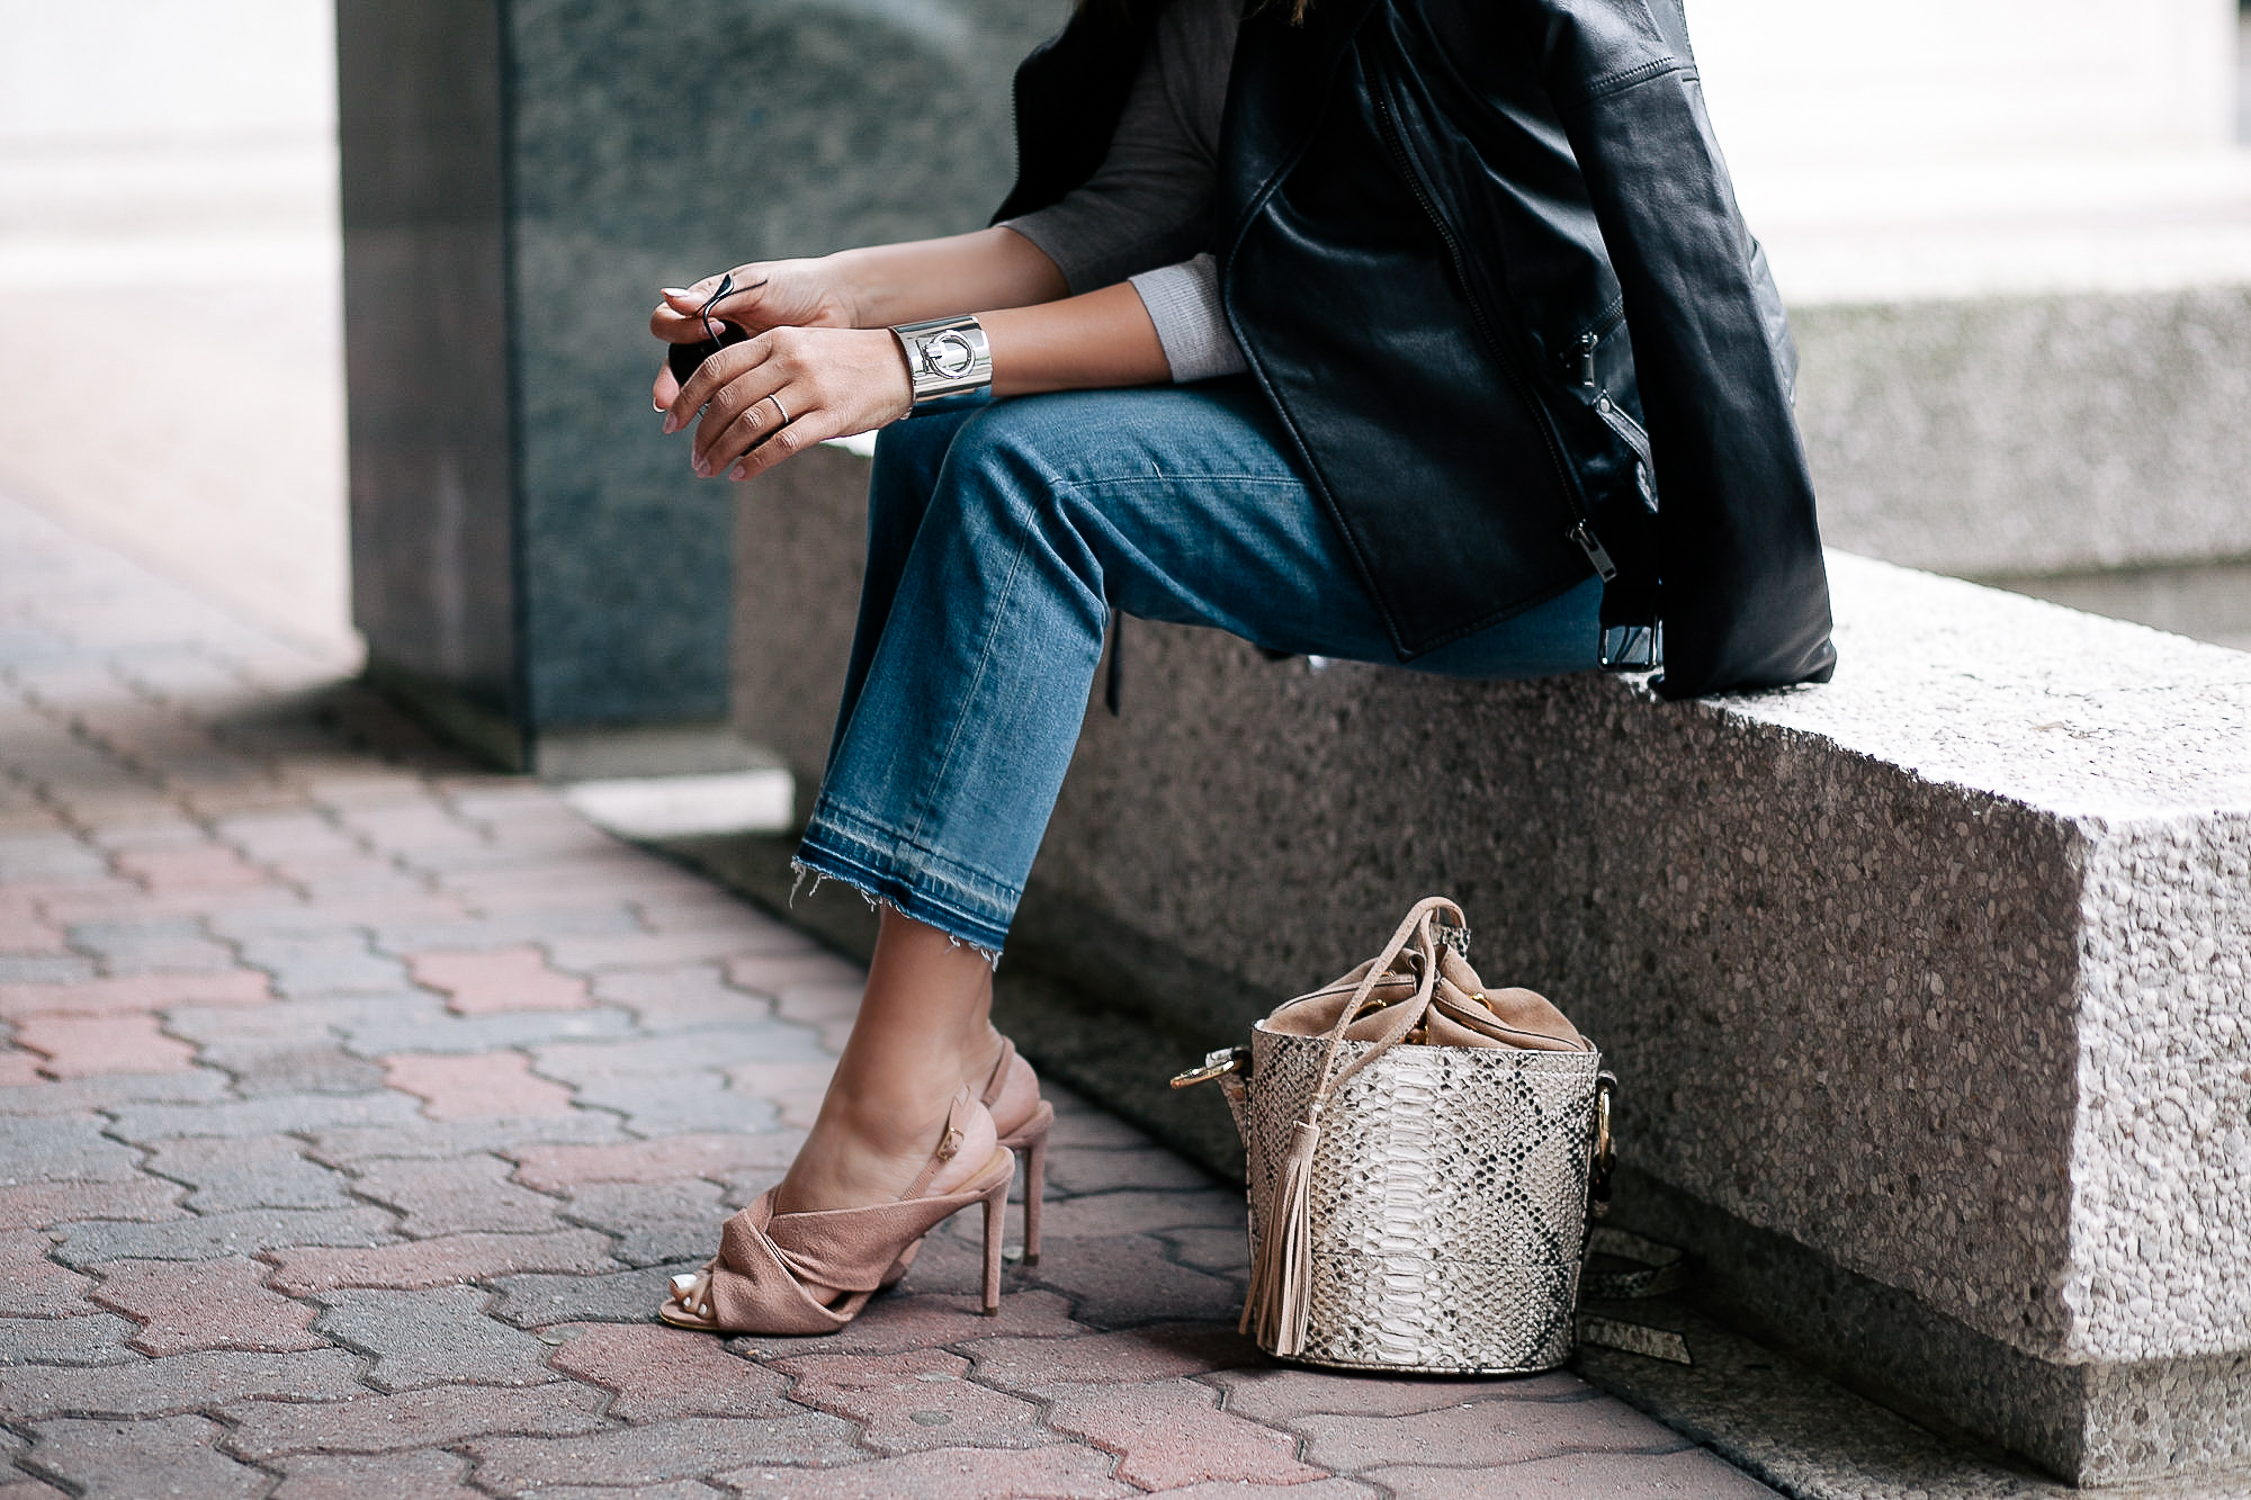 Silver Cuff and Blush Accessories from Banana Republic